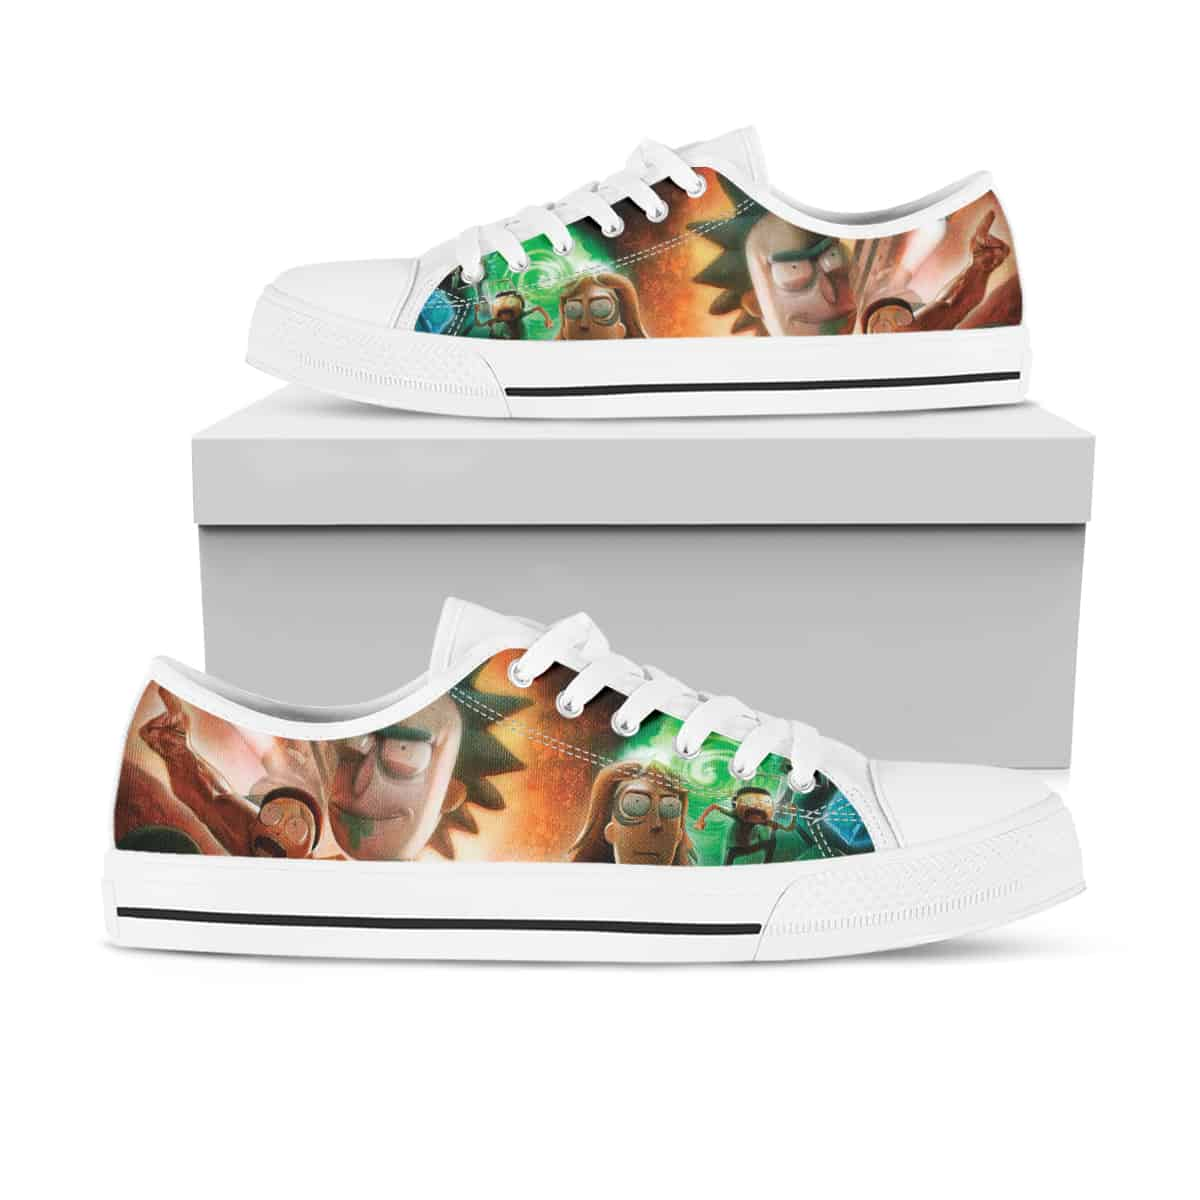 Rick And Morty Ha26 Low Top Shoes